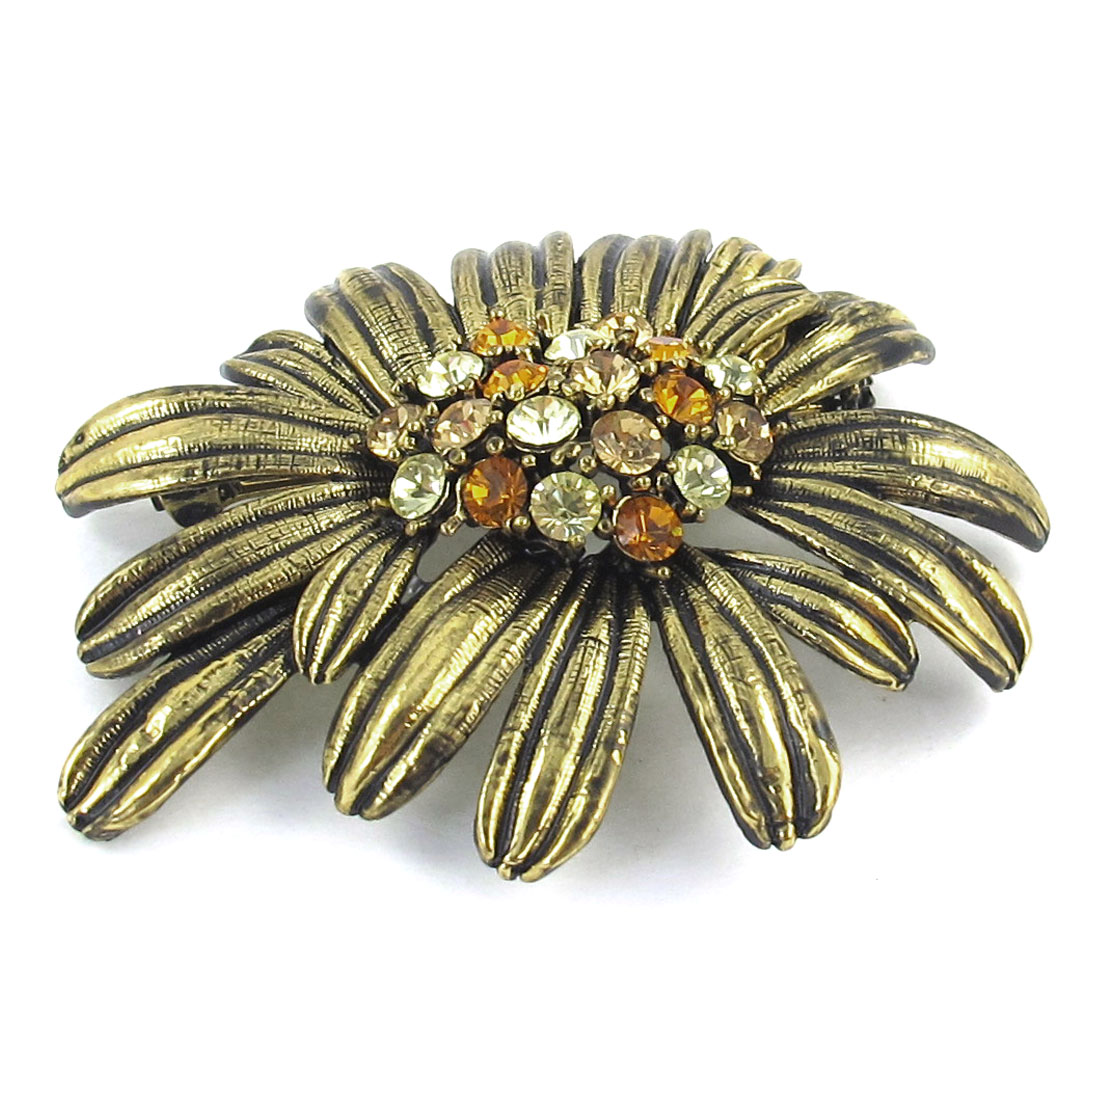 Rhinestone Inlaid Flower Design Metal Safty Pin Brooch Bronze Tone for Ladies